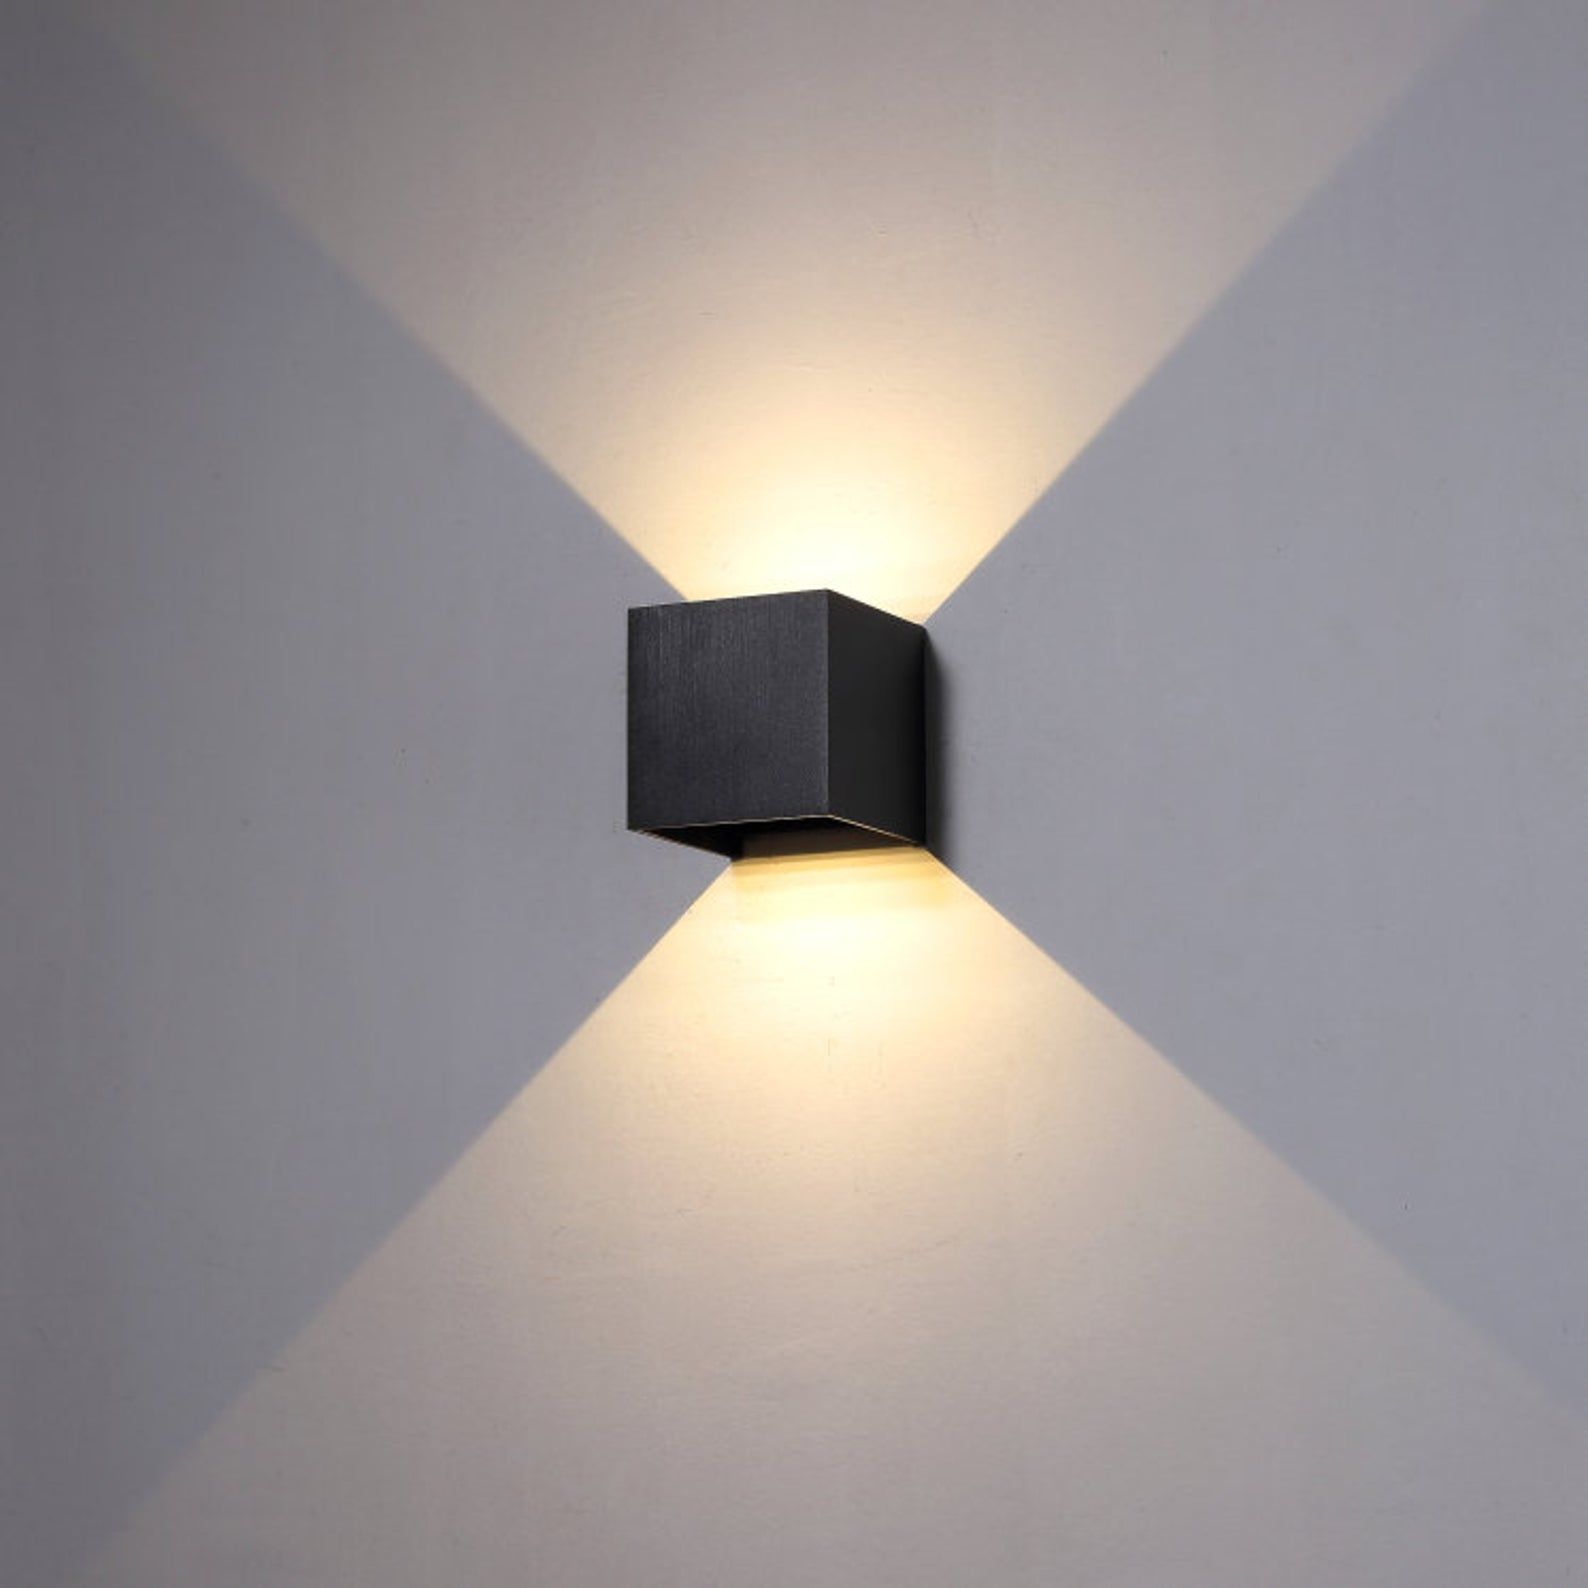 Pin On Lighting Outlet Details